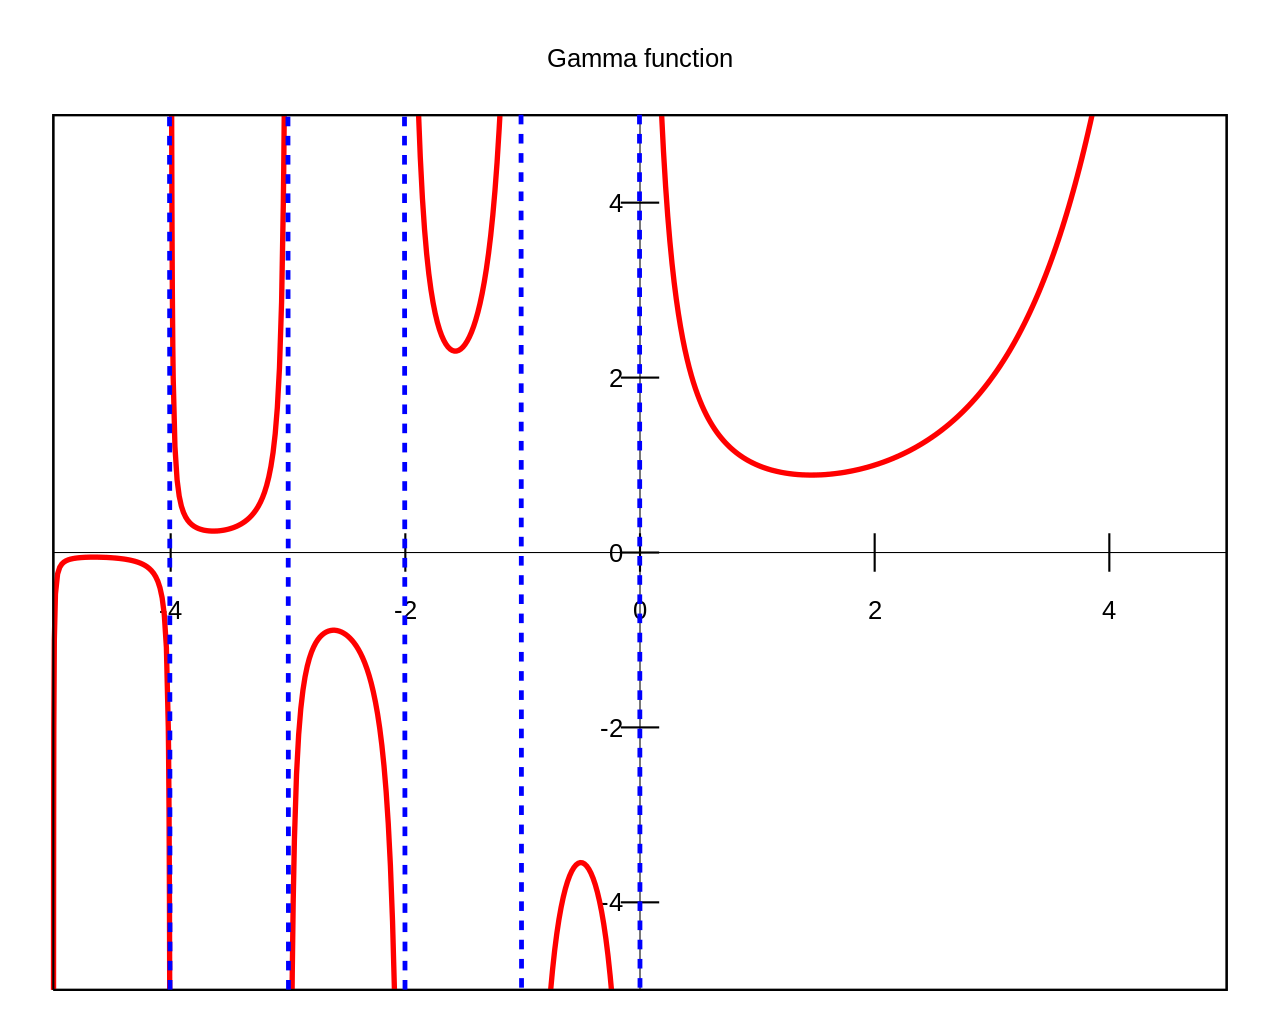 gamma function graph for real argument